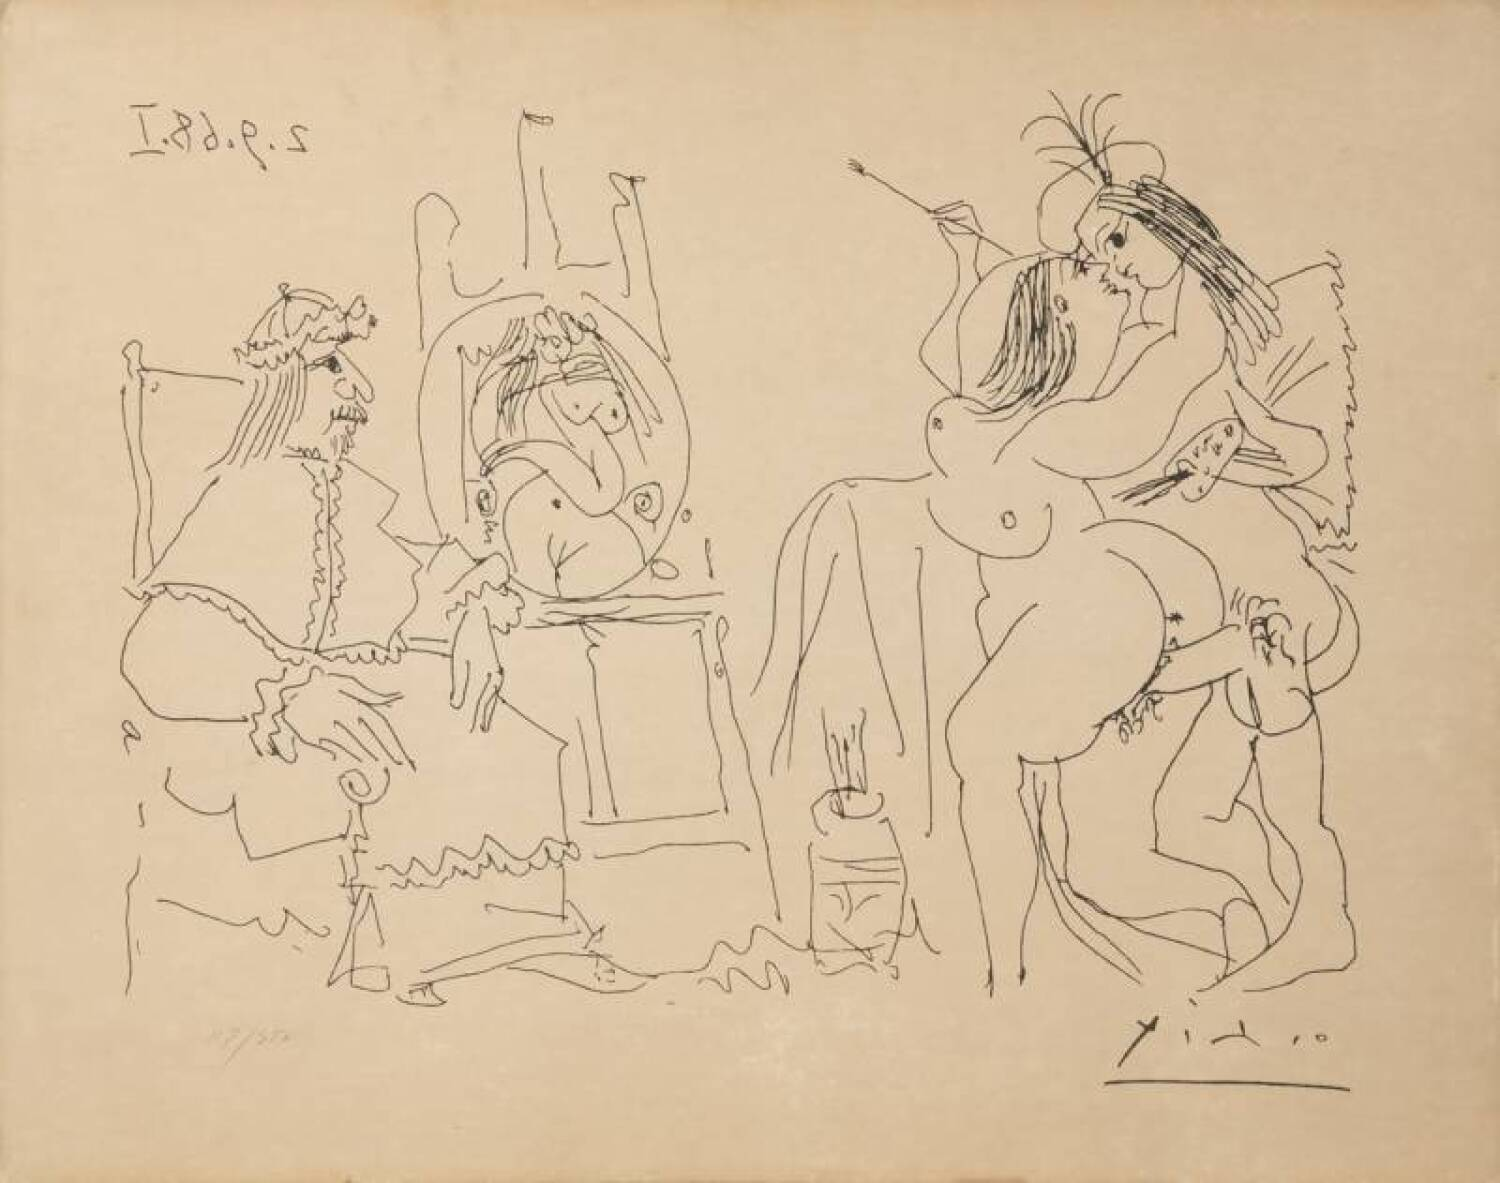 lot 369 of 641 pablo picasso series 347 erotic prints